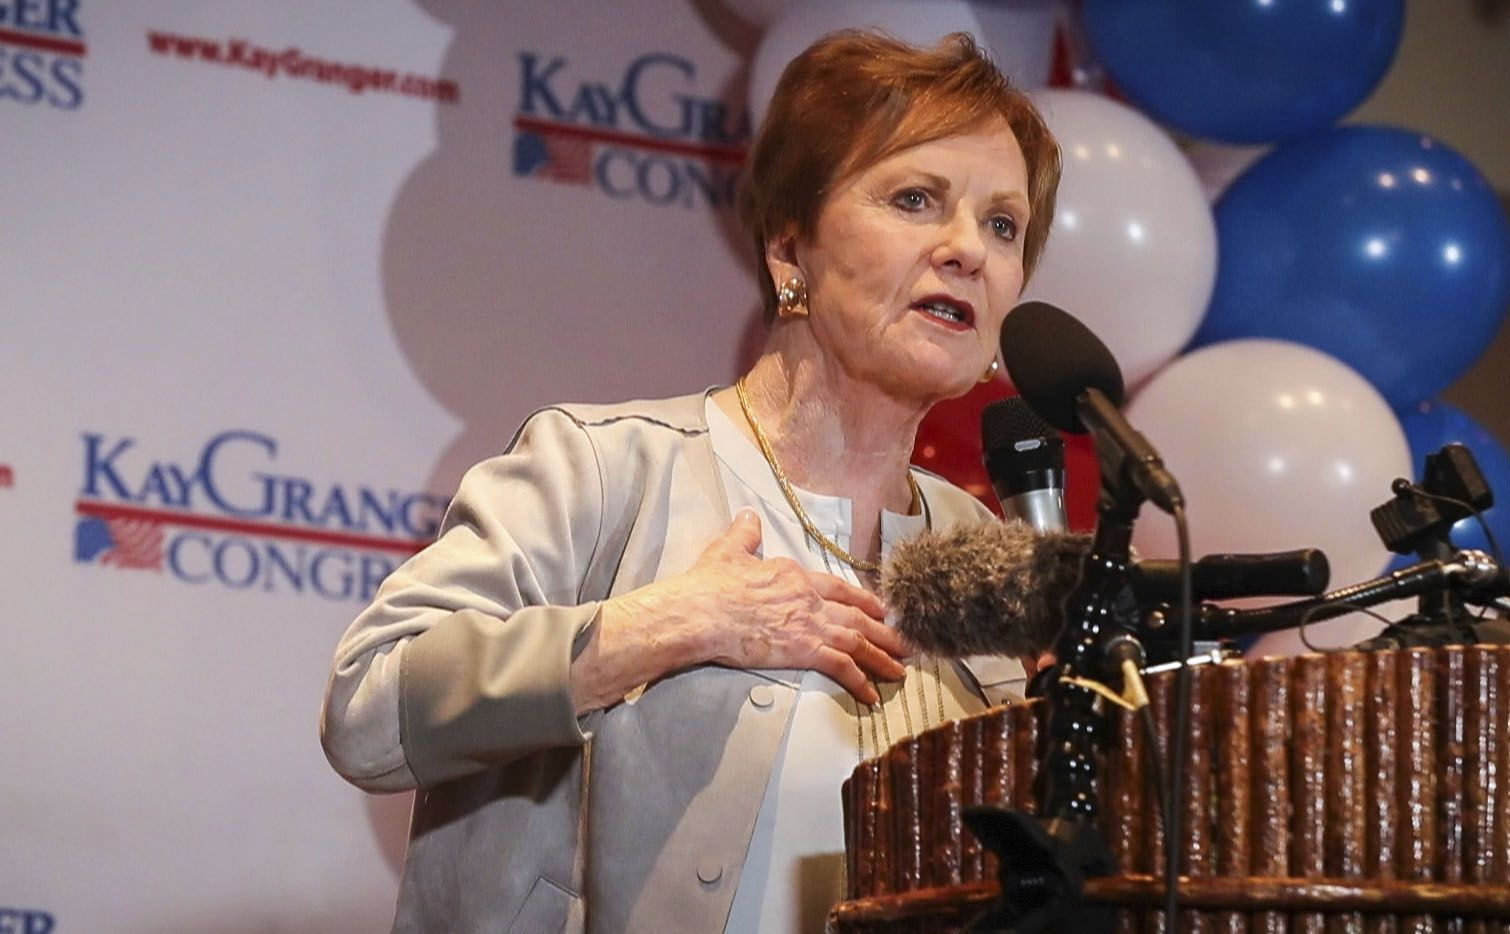 Rep. Kay Granger, R-Fort Worth, shown during an election night watch party, March 3, 2020, in Fort Worth, survived a tough GOP primary challenge. She benefited from the perks of incumbency, along with the support of President Donald Trump.